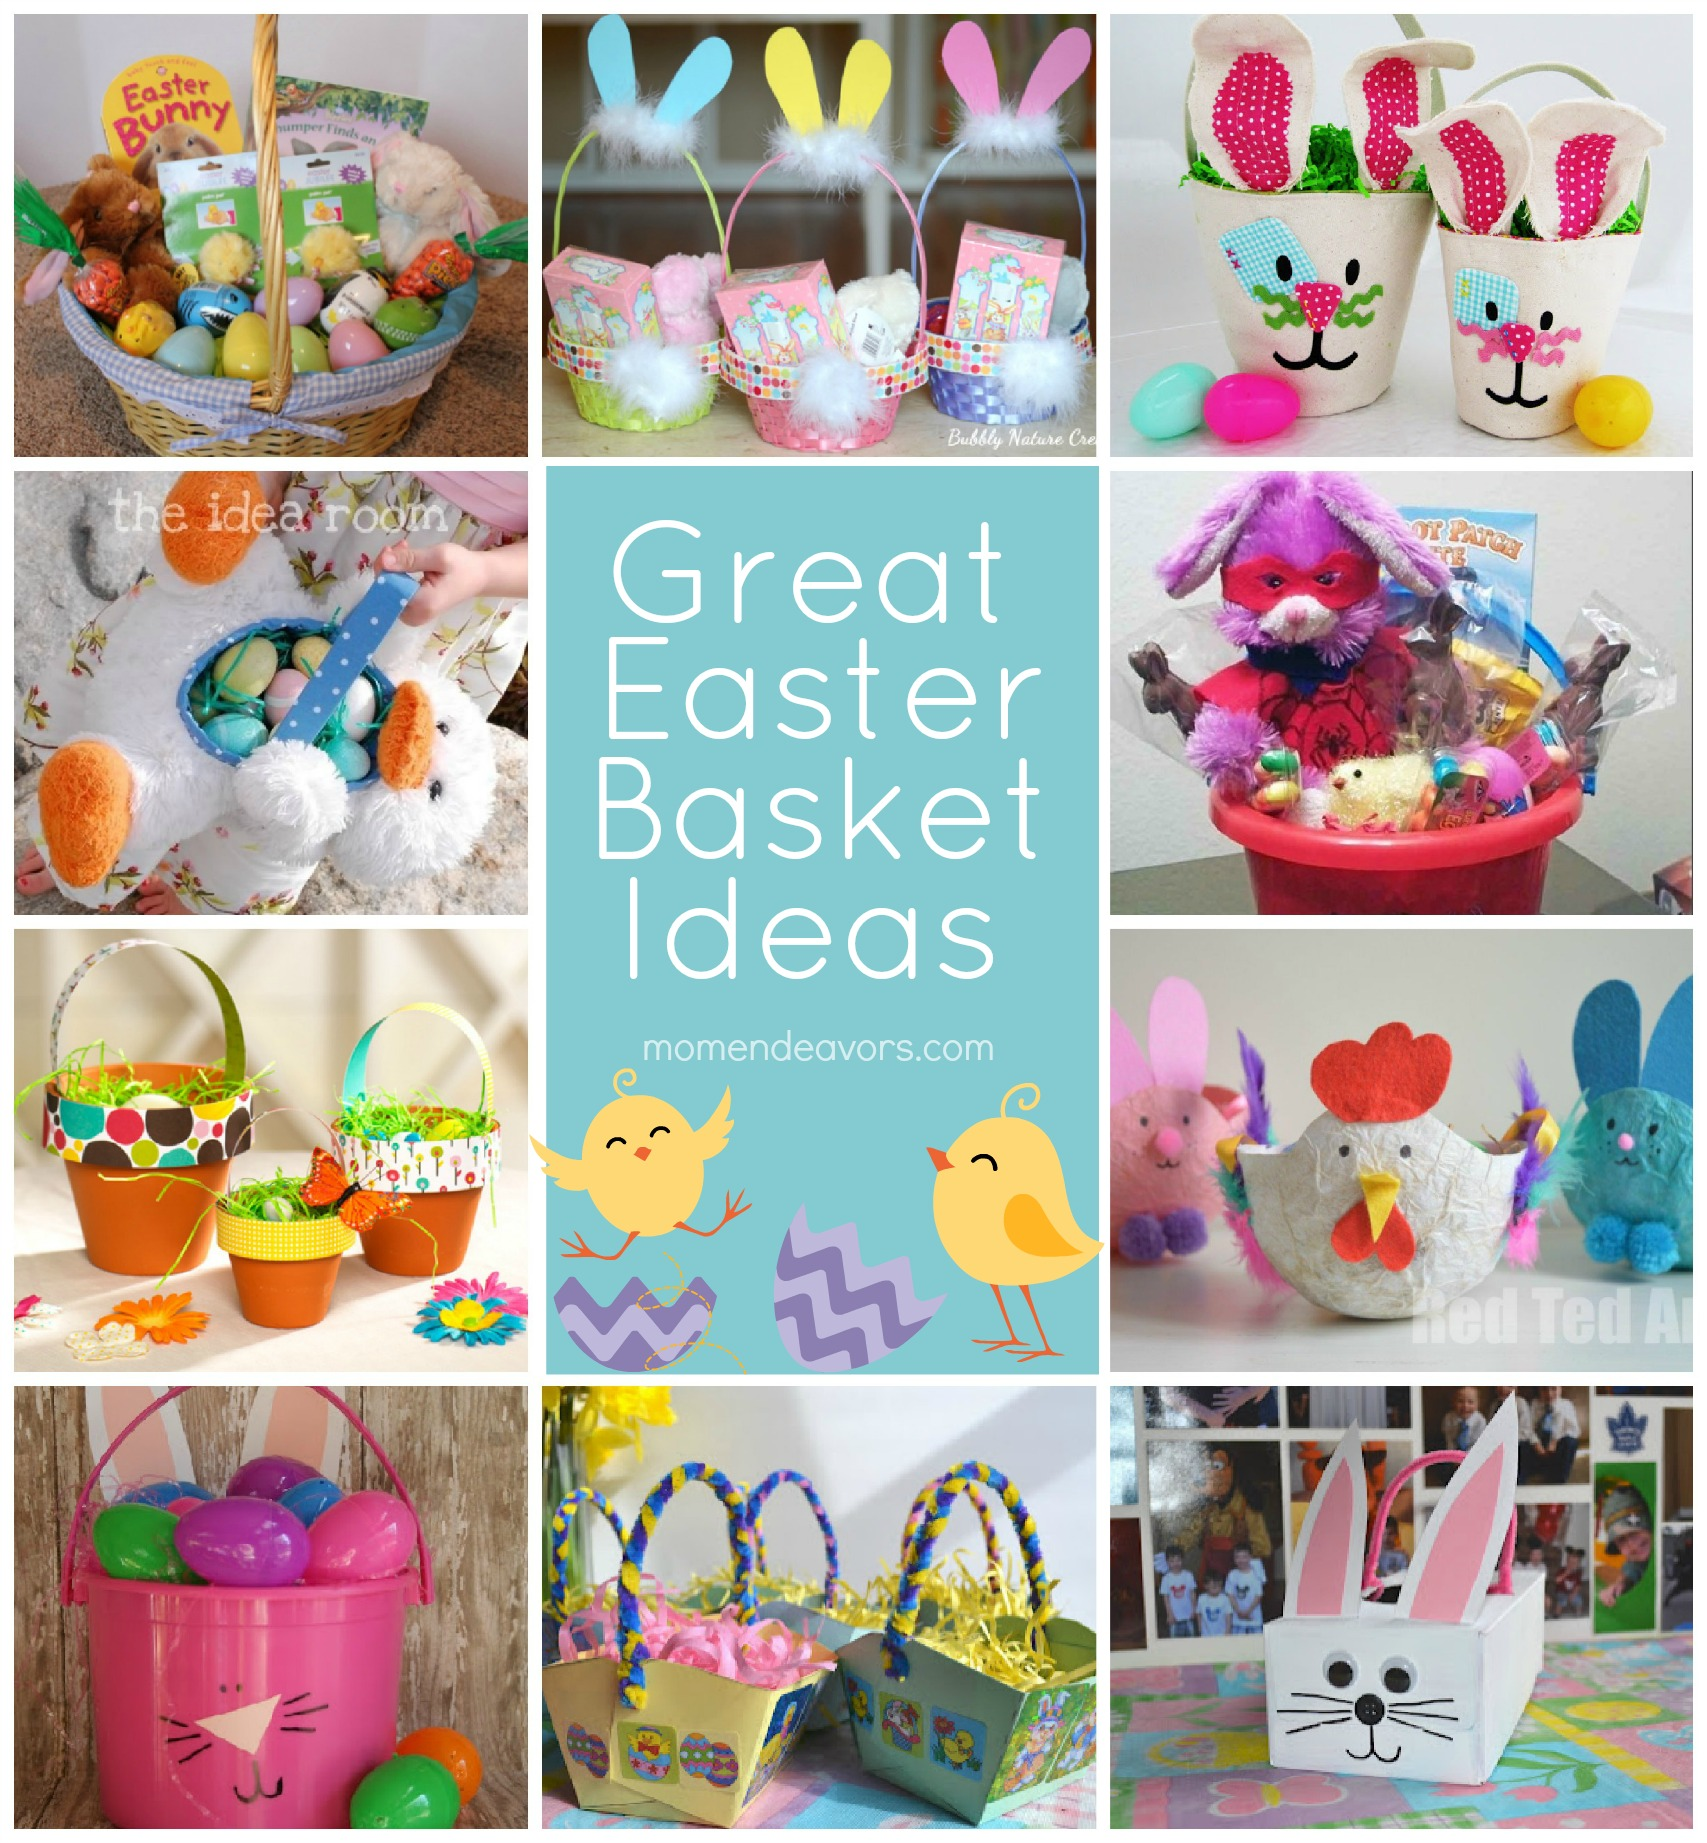 Great Easter Basket Ideas